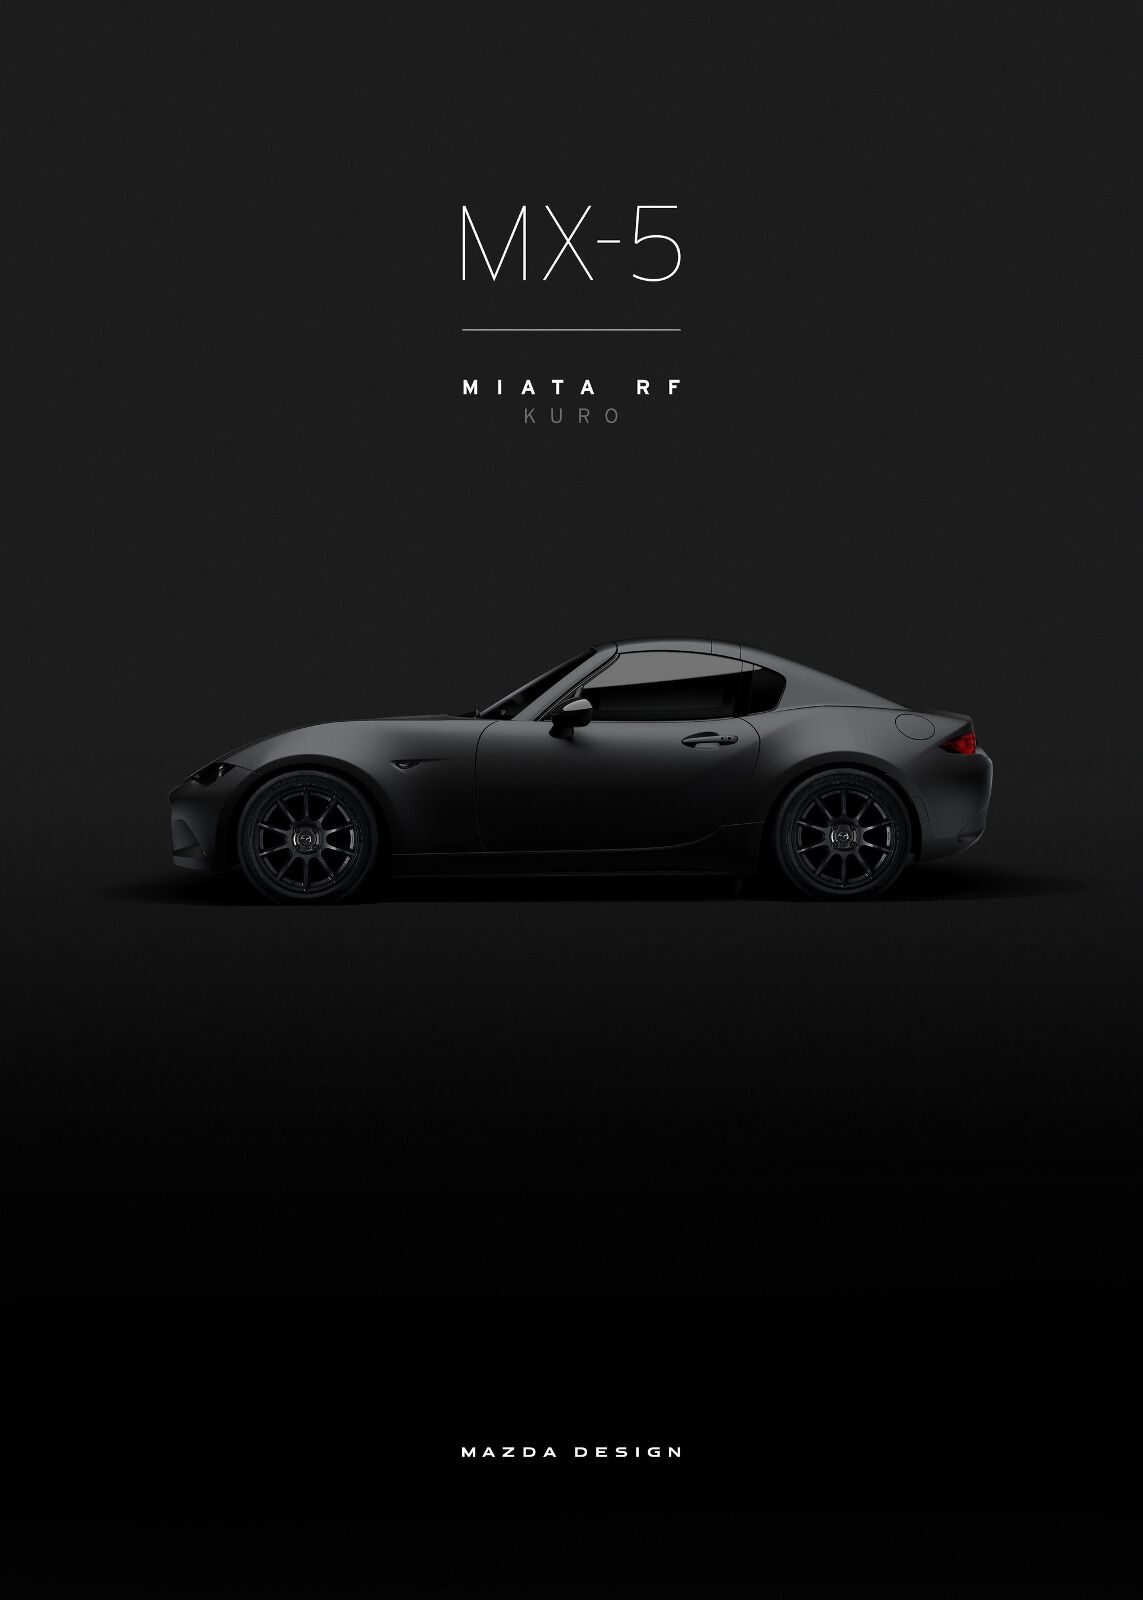 Mazda Mx 5 Rf Kuro Mazda Wallpaper News Mazda Pinterest